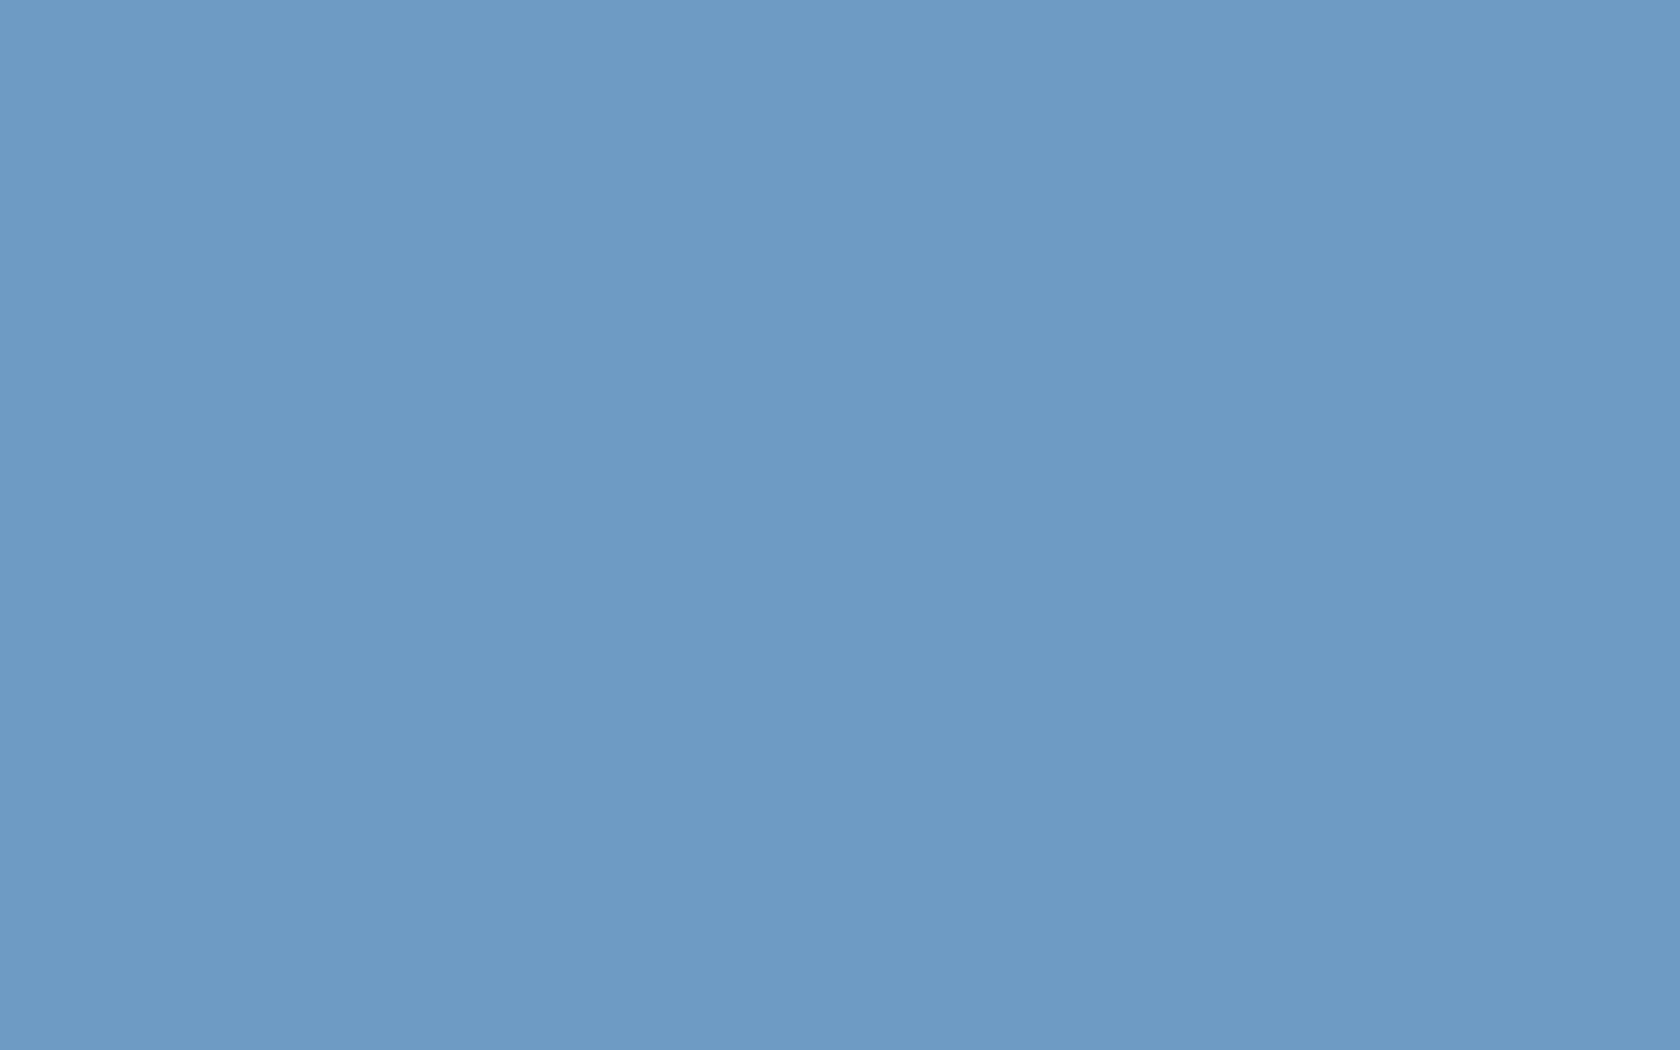 1680x1050 Cerulean Frost Solid Color Background